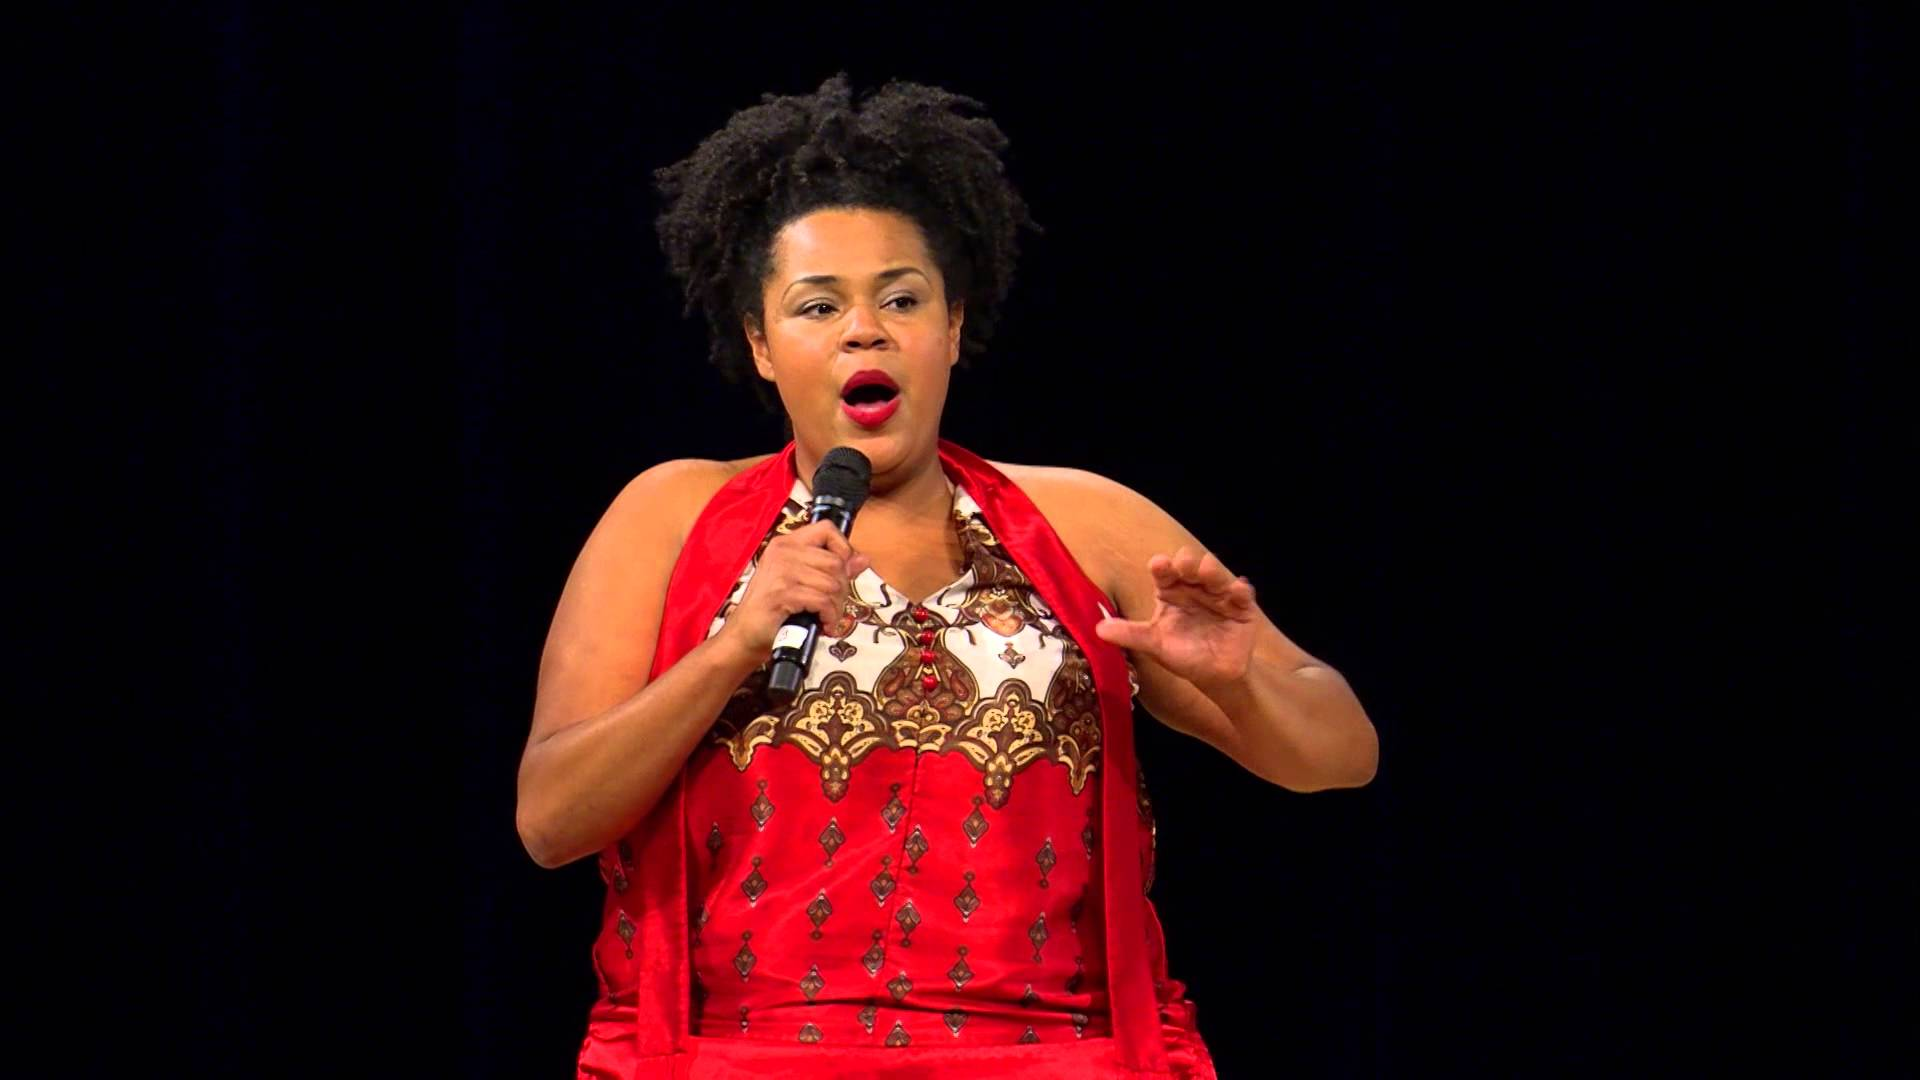 Desiree Burch Felicity Ward Amp Kelly Convey Join Our